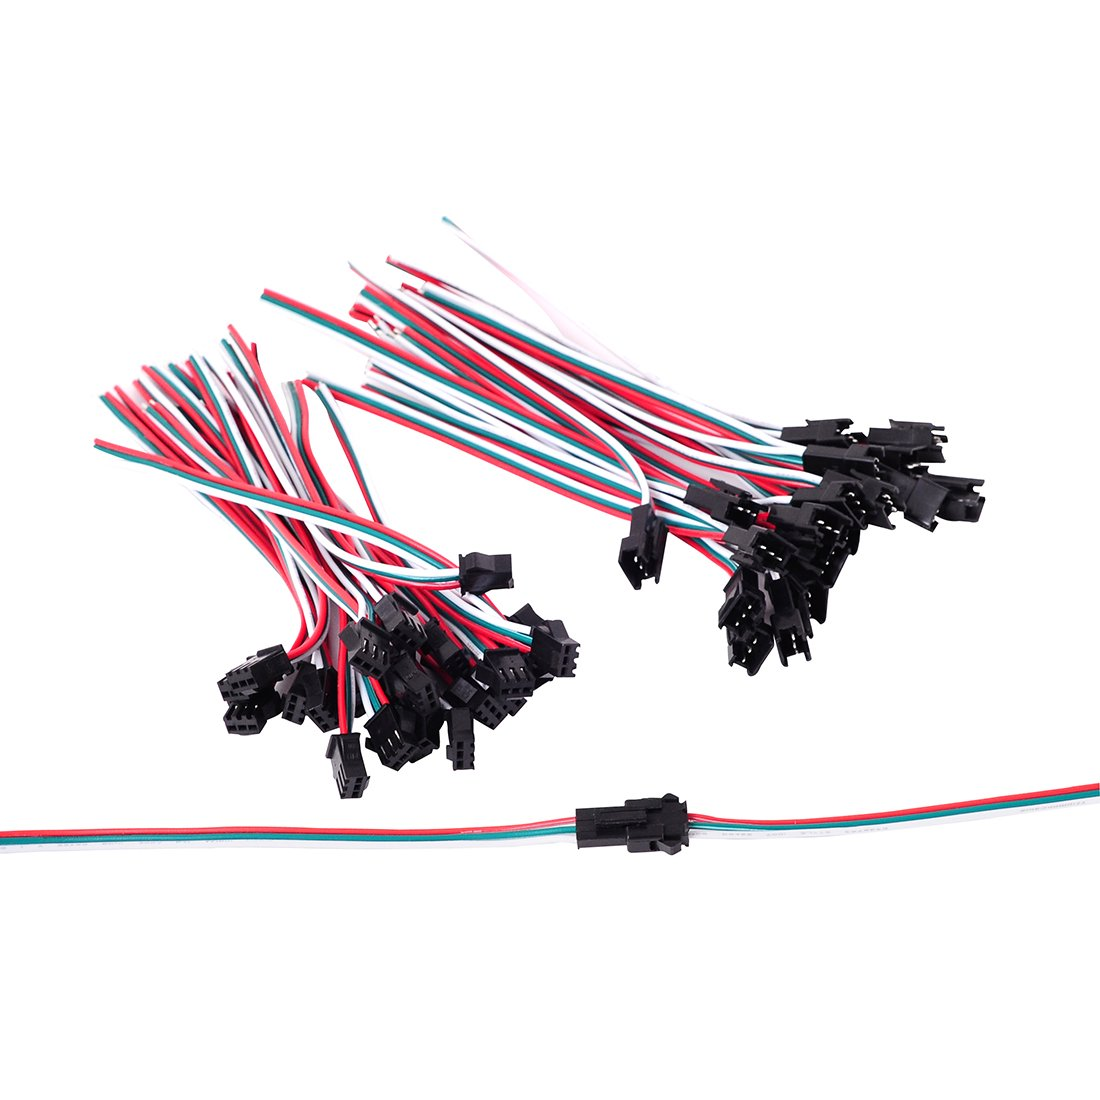 Btf Lighting 20 Pairs Jst Sm 3 Pin Connectors For Wiring Money Precautions Ws2812b Ws2811 Ws2812 Sk6812 Led Strip Female Male 15cm 20awg Wire Garden Outdoor